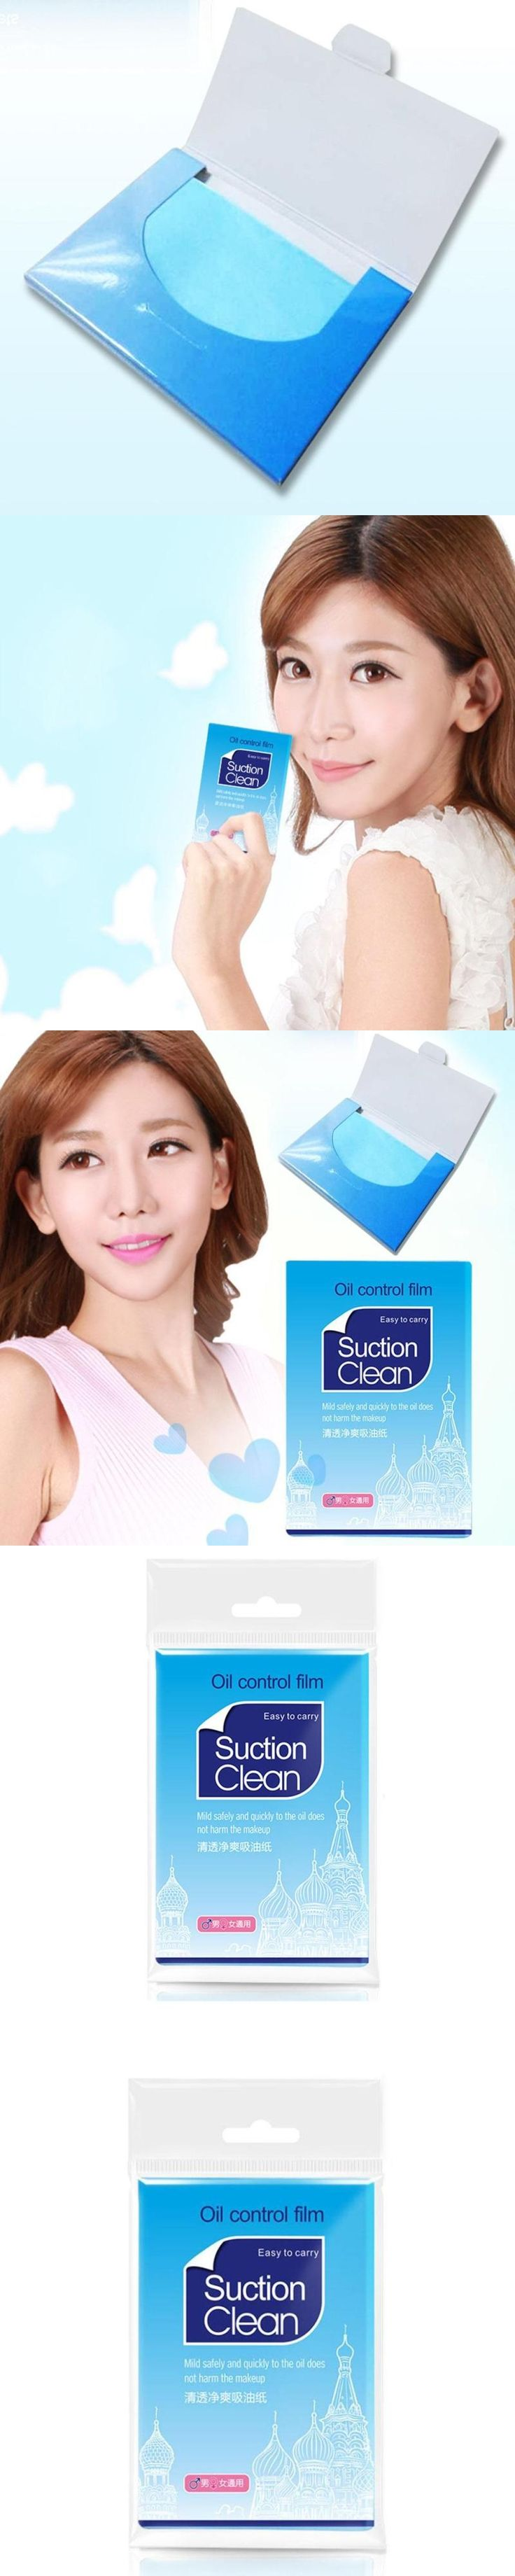 100Pcs/Pack Facial Paper Oil Control Absorption Facial Tissue Makeup Blotting Cleansing Paper RP1-5